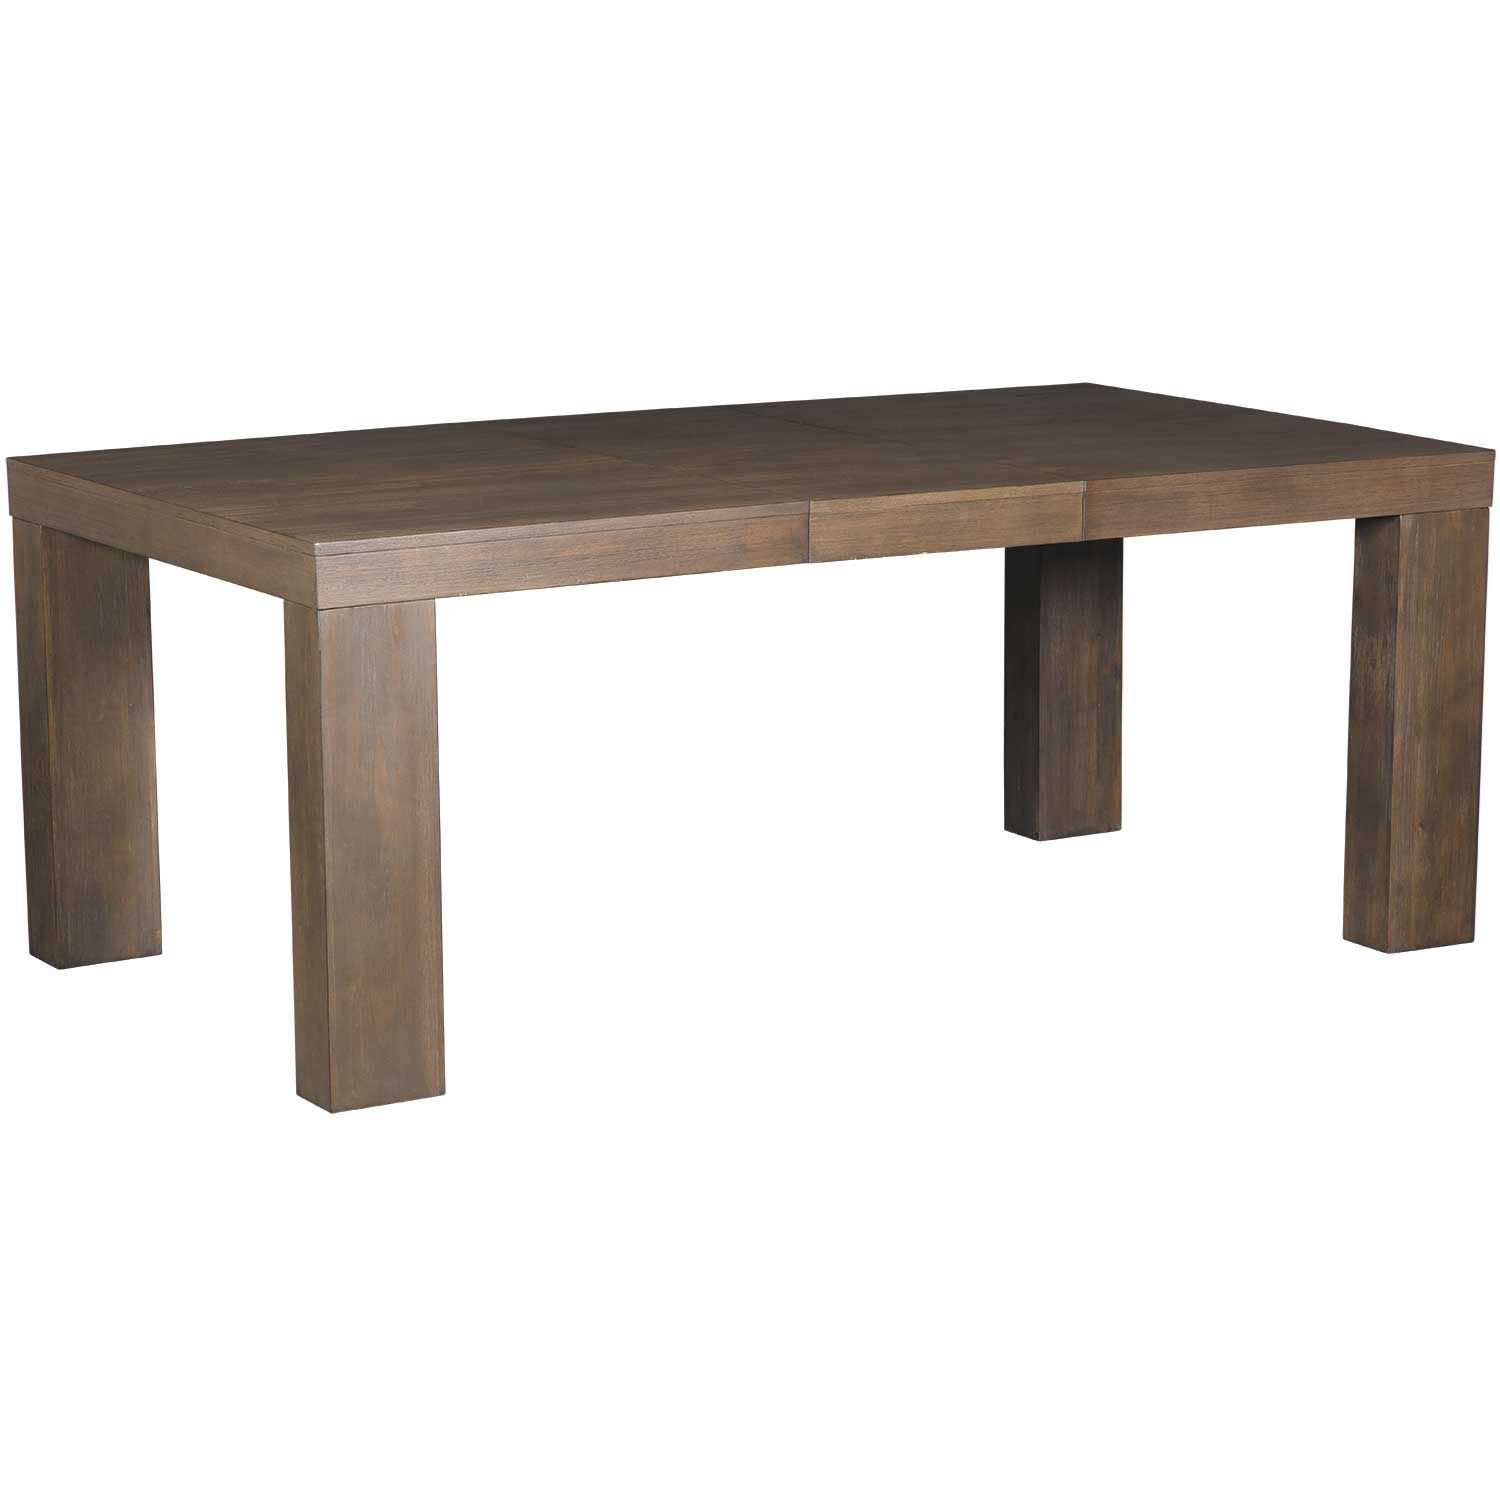 Picture of Grady Rectangular Dining Table